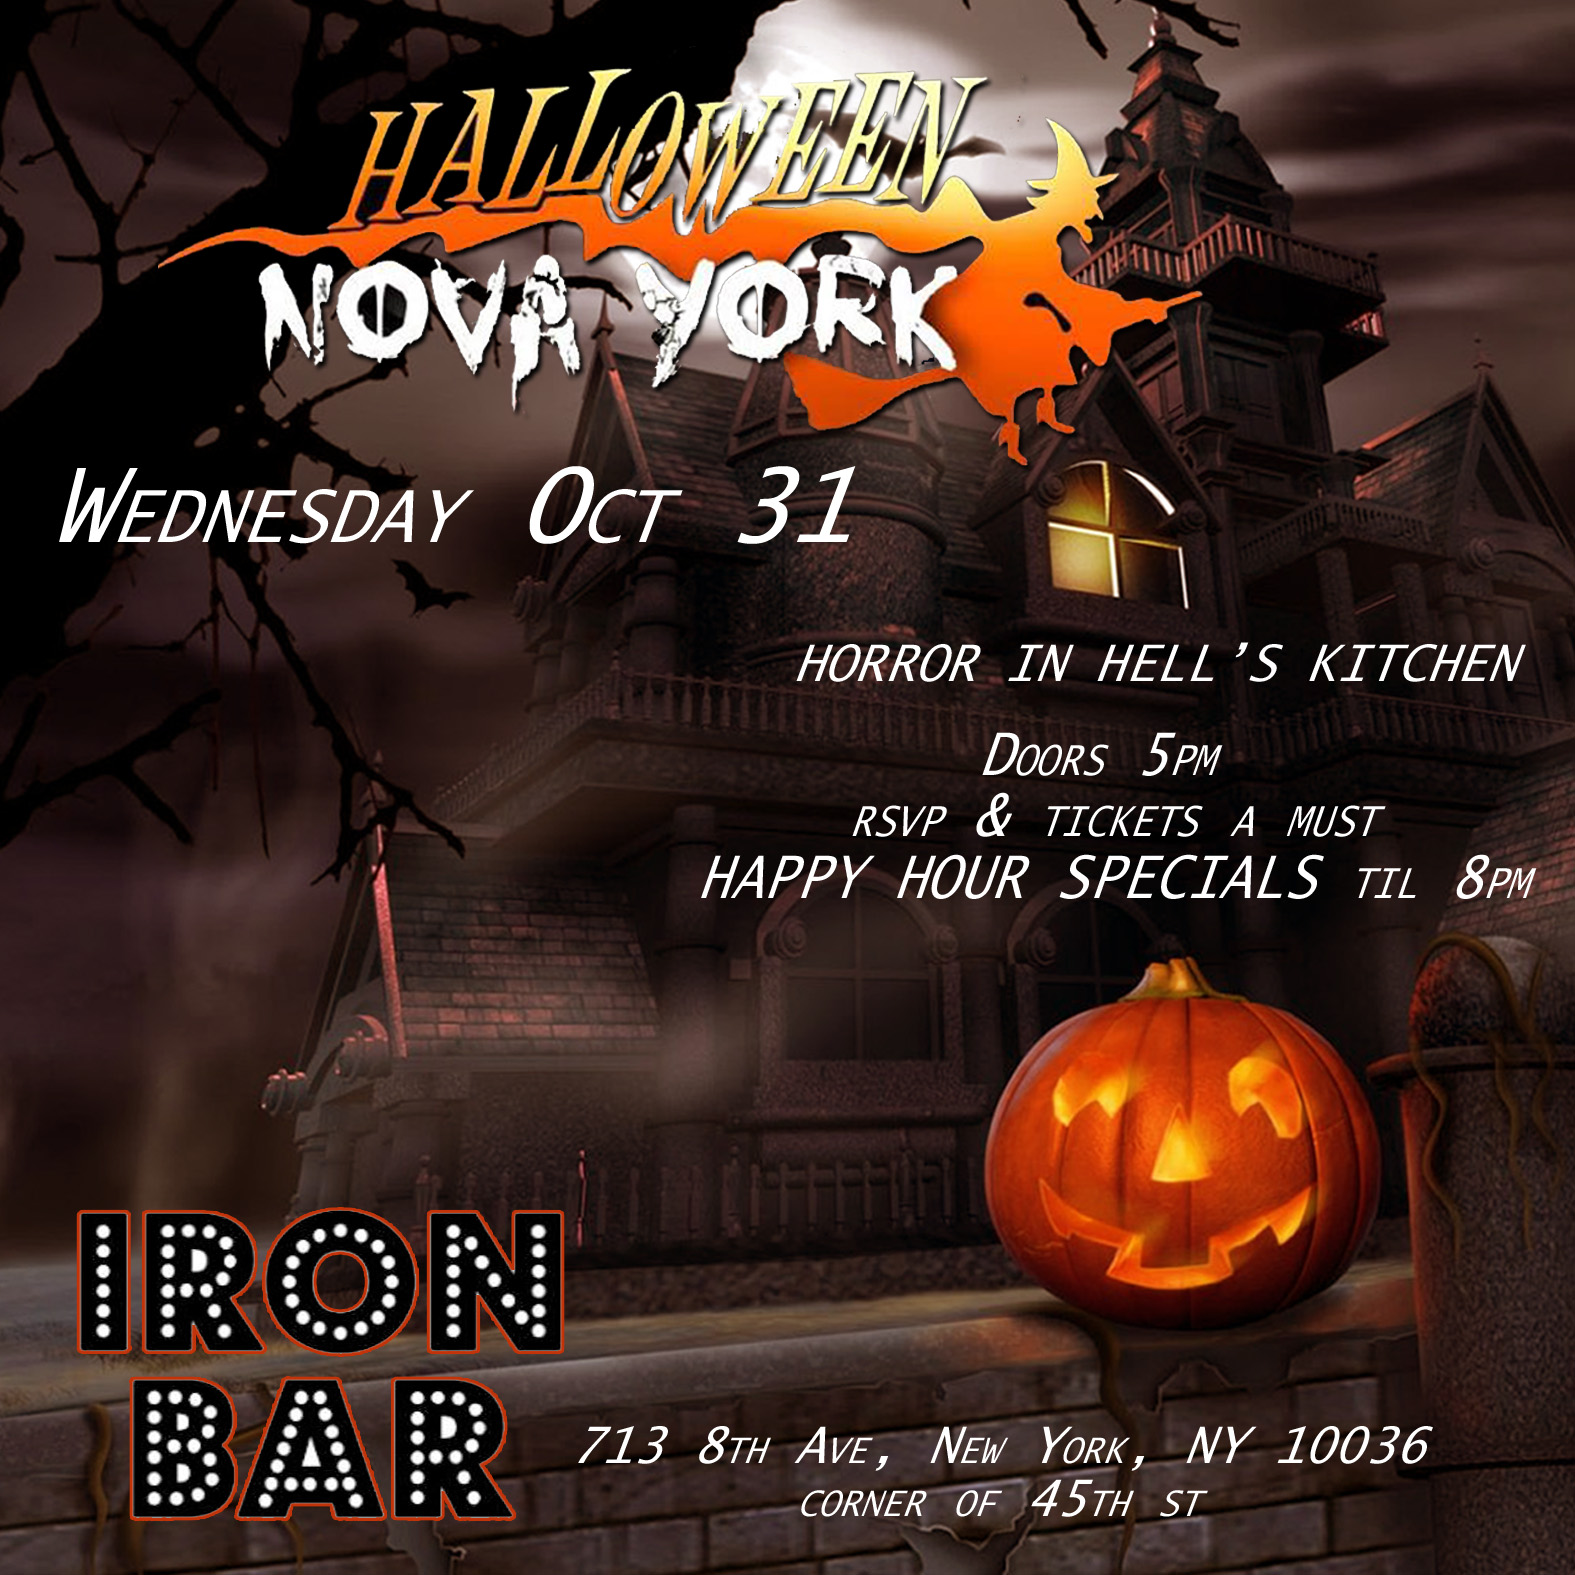 Hallowe Horror at Hells Kitchen